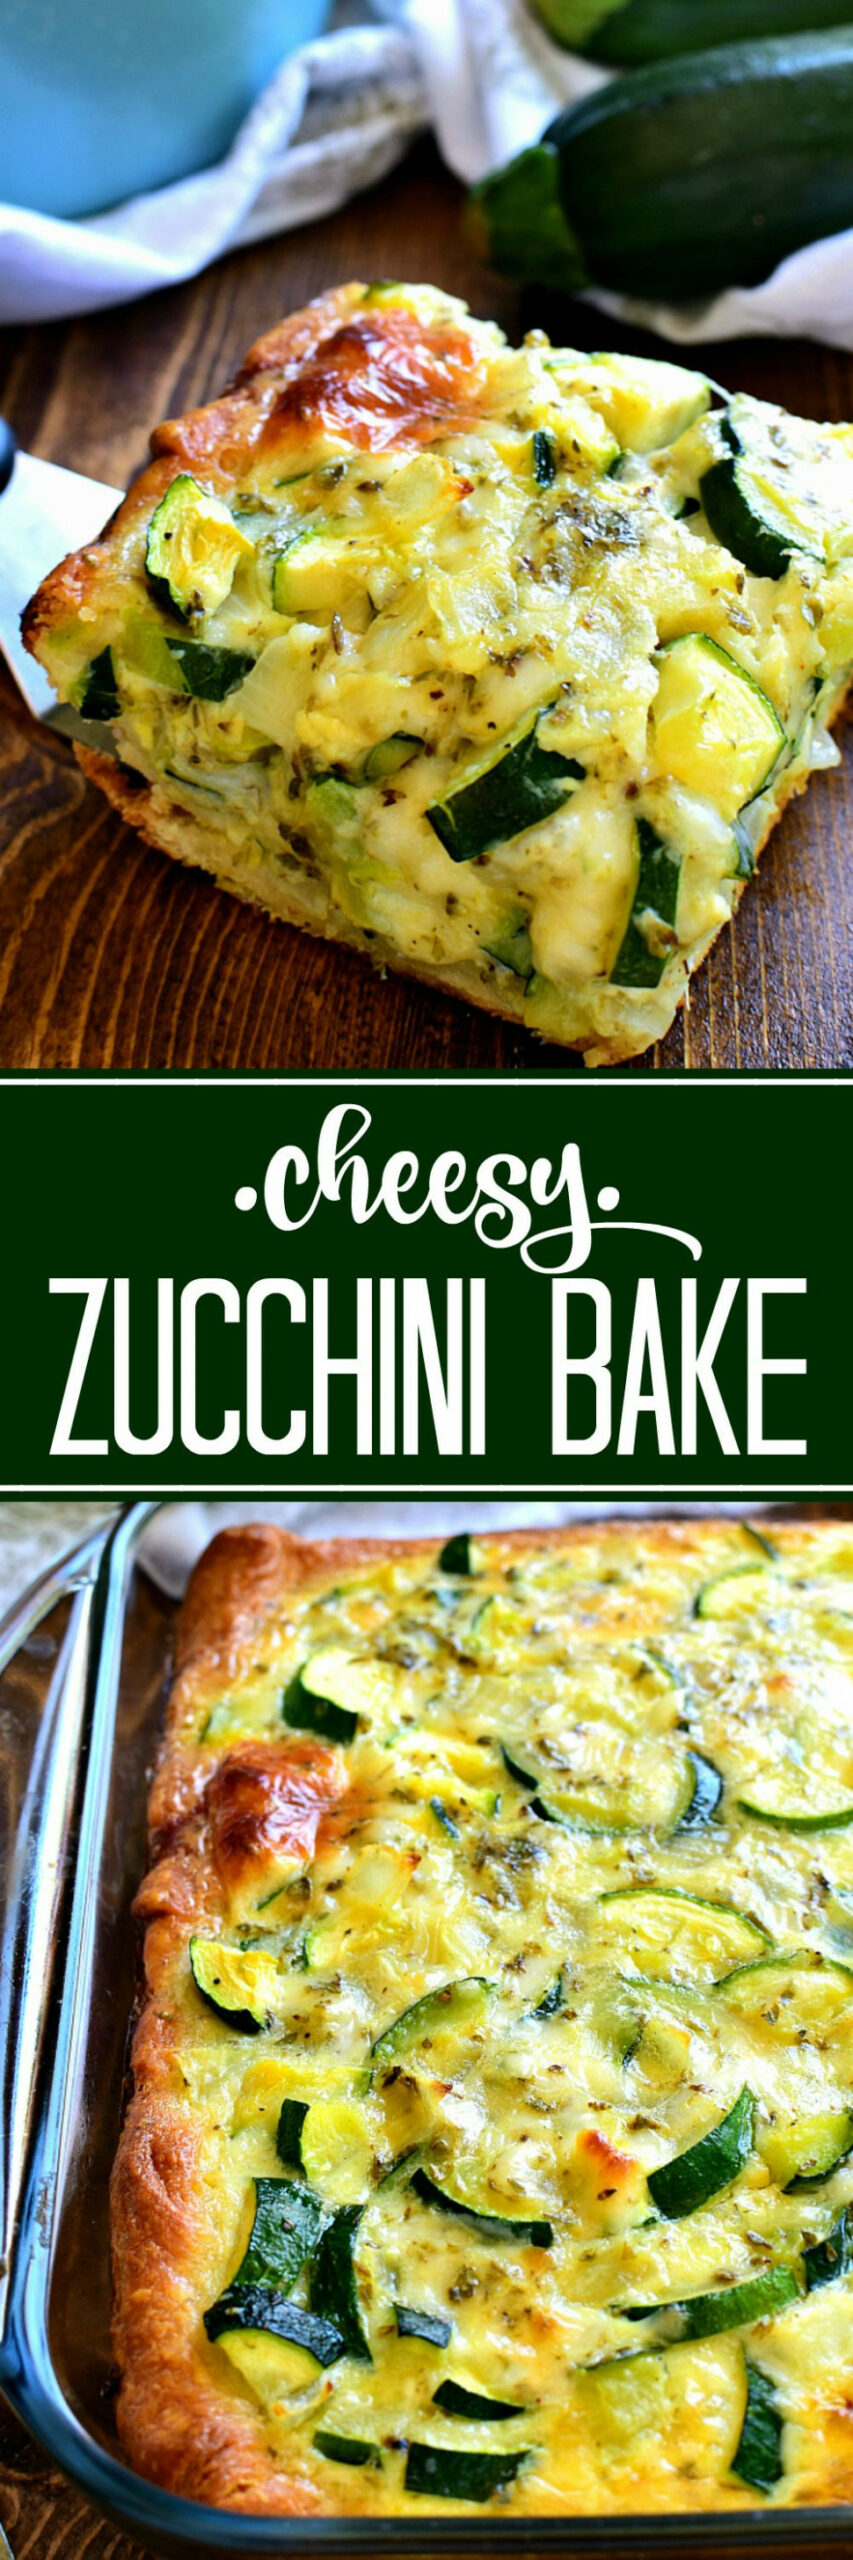 This Cheesy Zucchini Bake Is One Of My Favorite Ways To ..